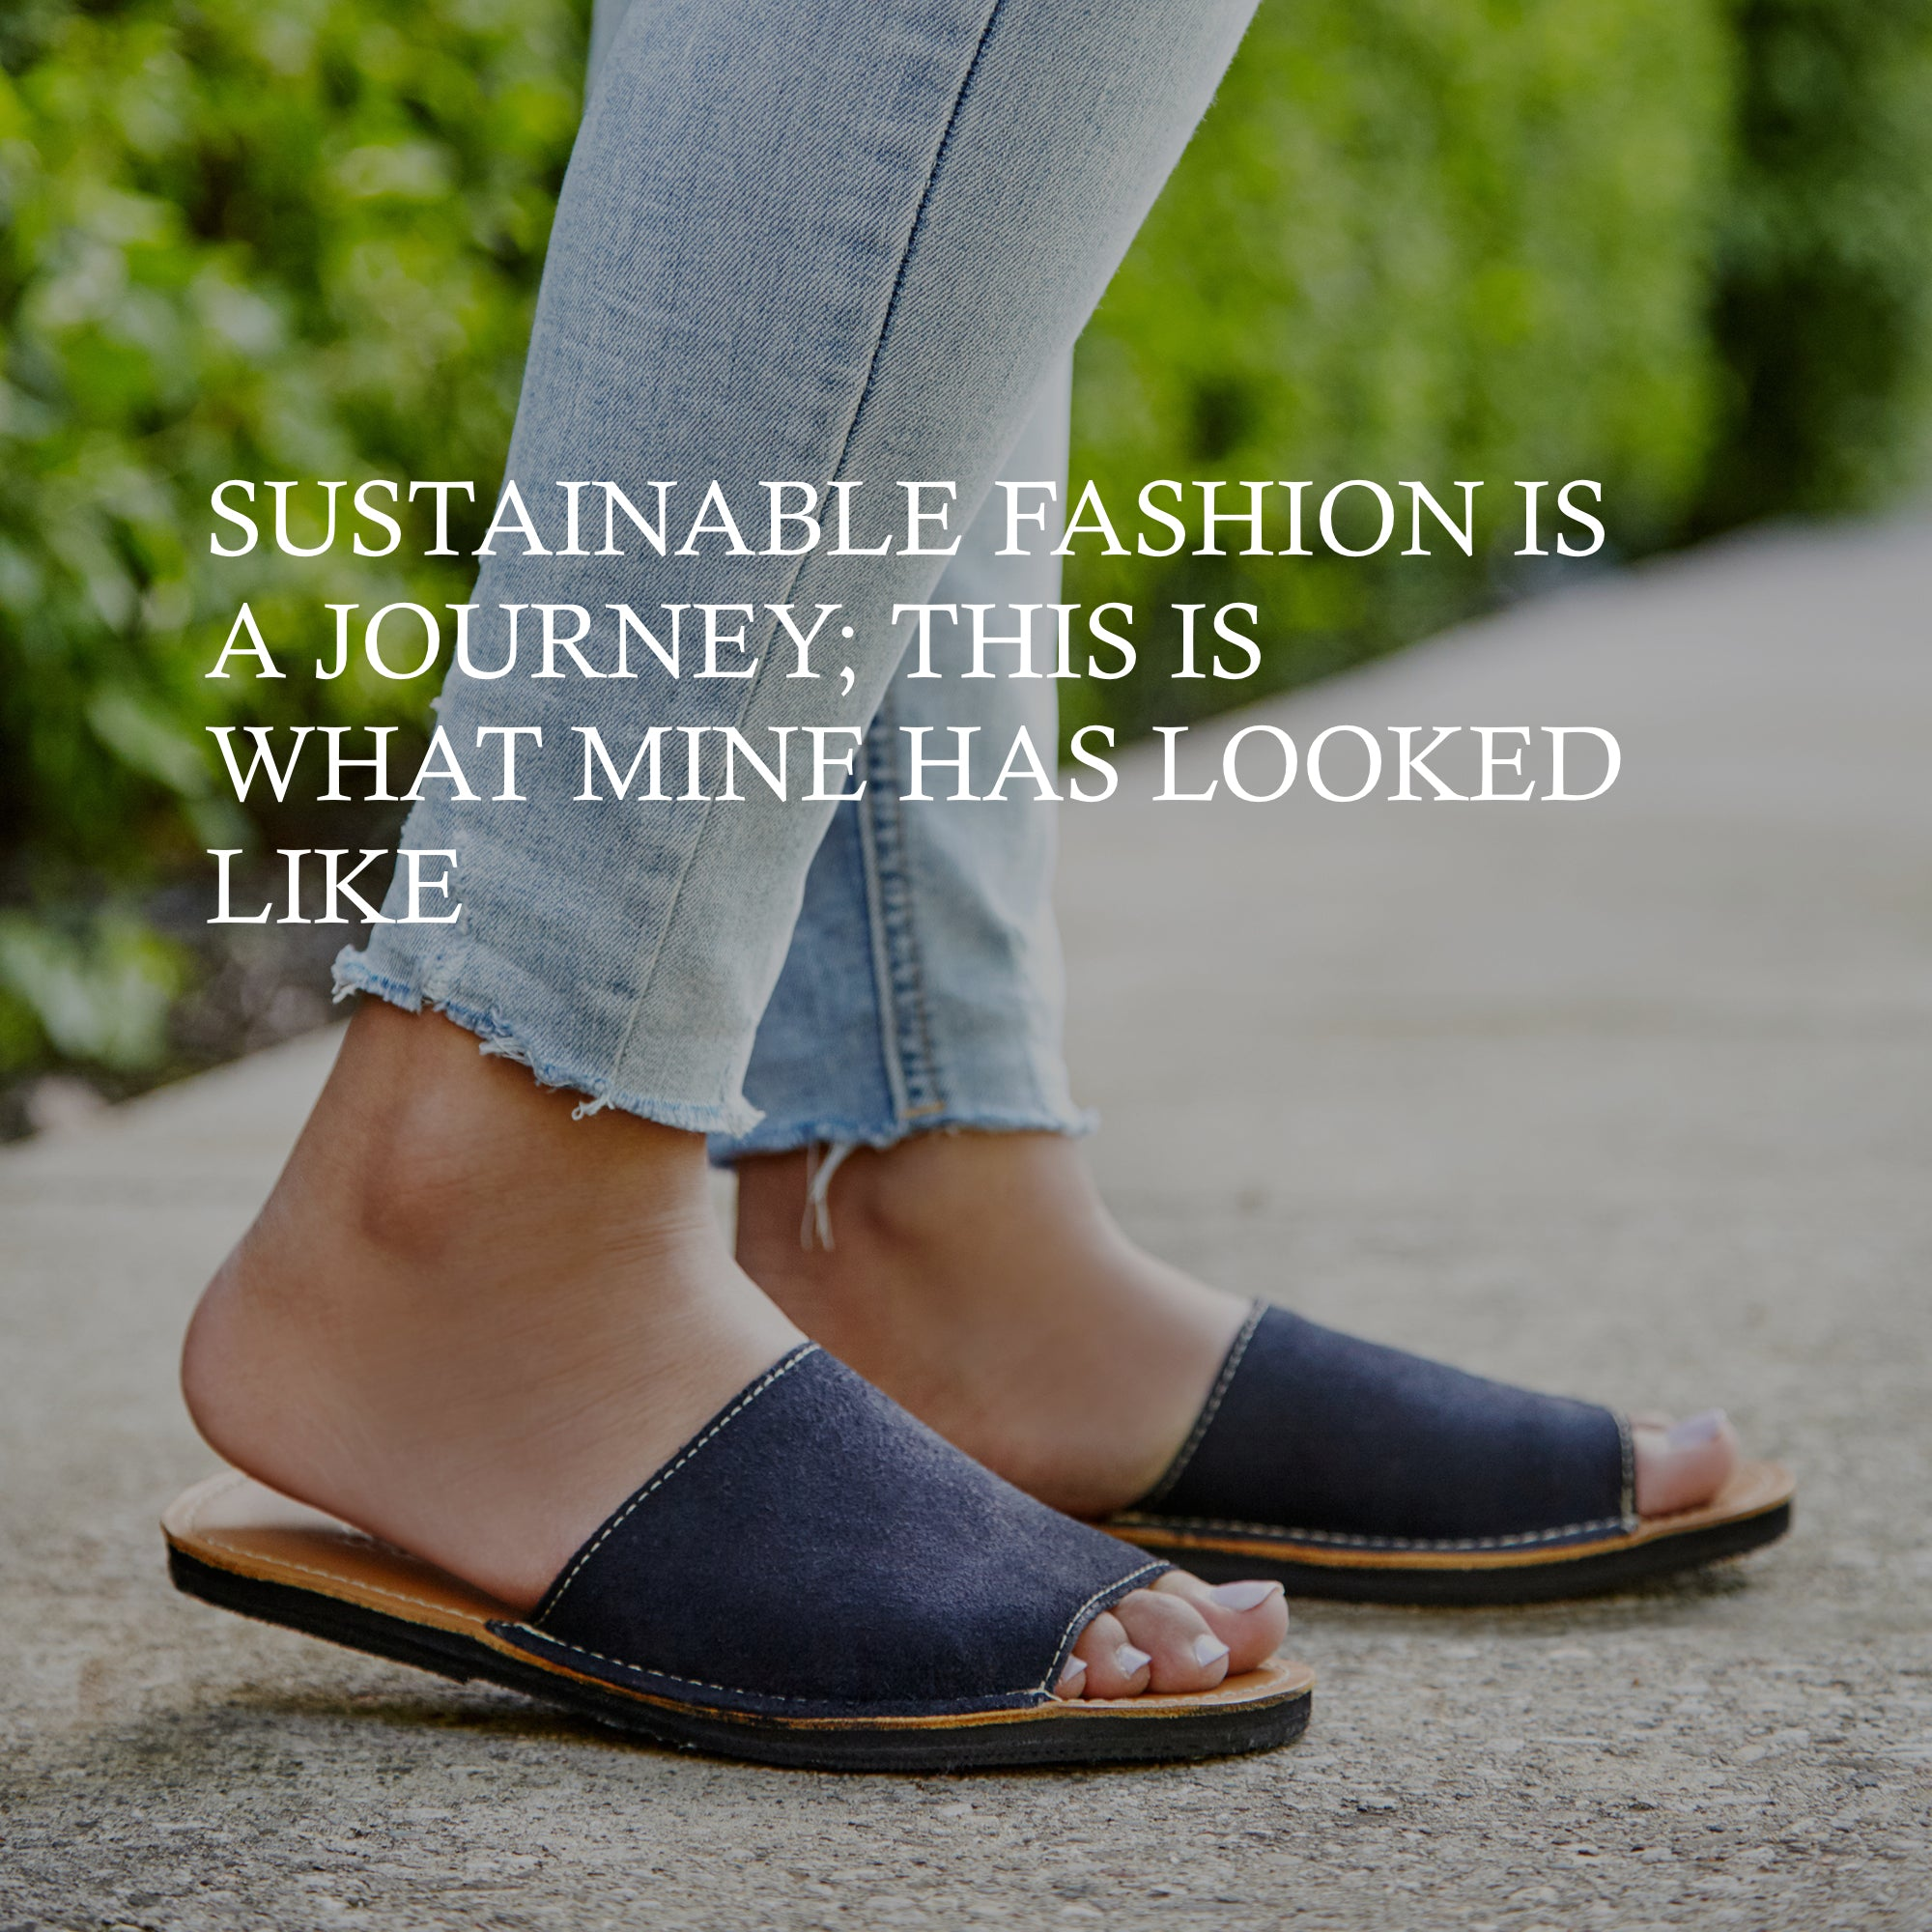 blog post: Sustainable Fashion is a Journey; This is What Mine Has Looked Like